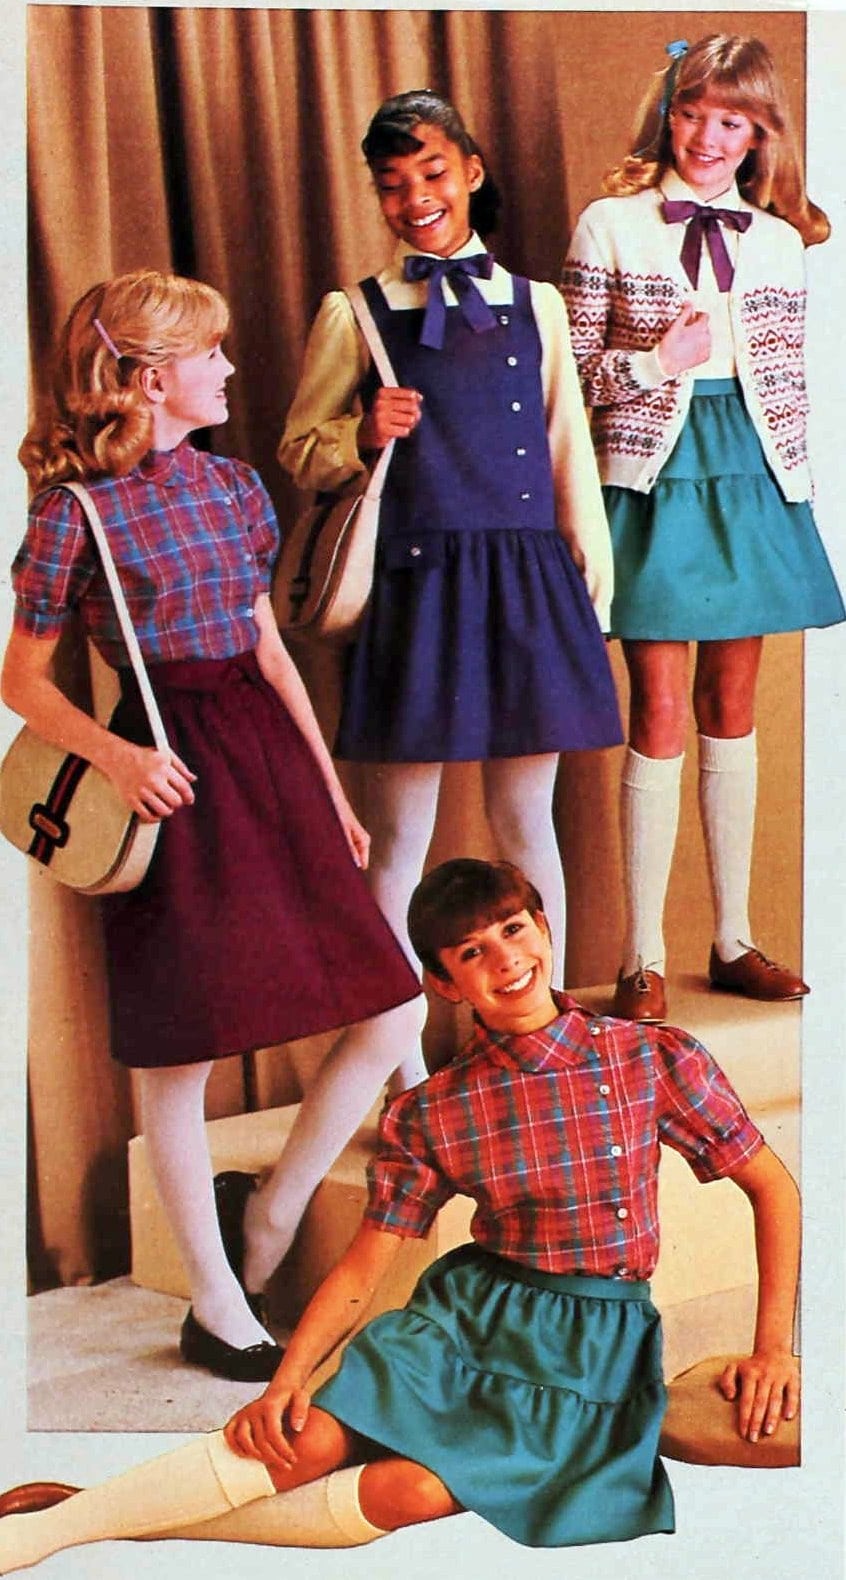 Vintage 80s cottagecore prairie shirt and skirt combos from 1983